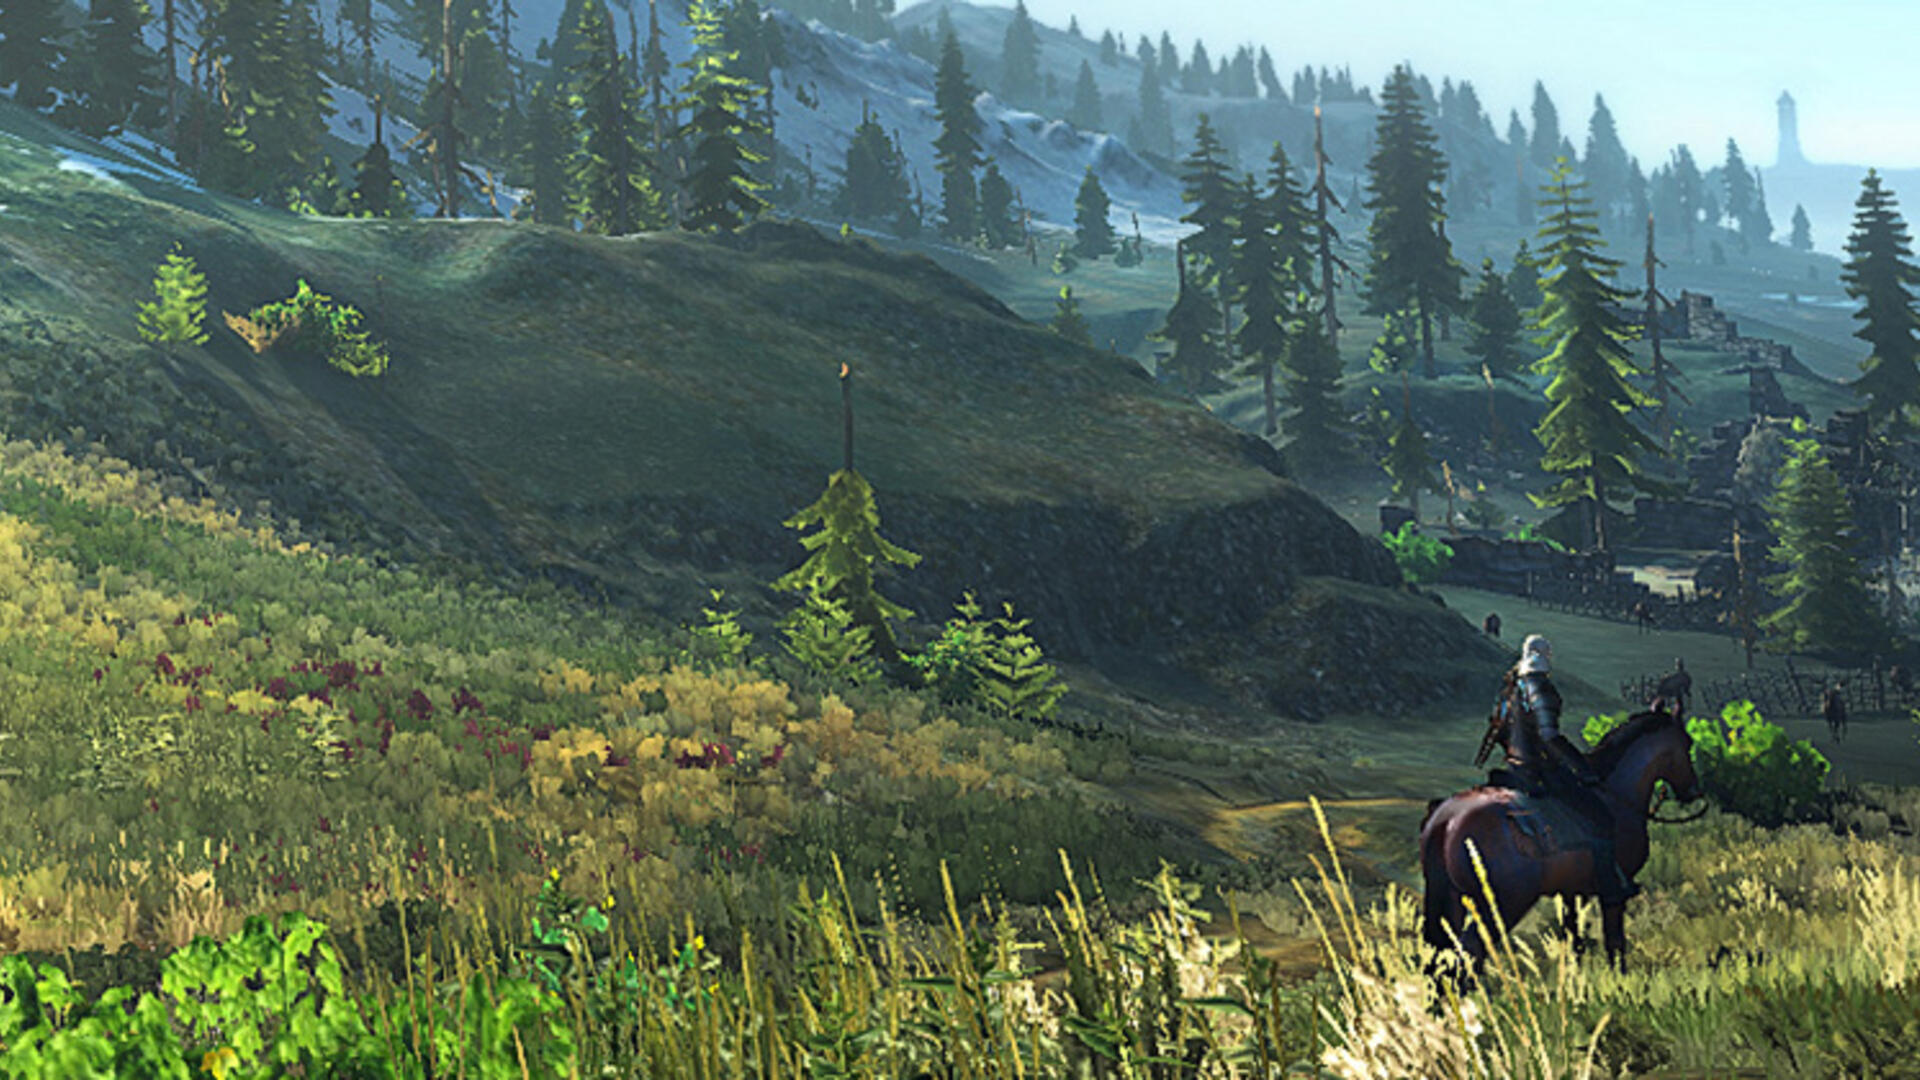 The Witcher 3 Places of Power Locations - Where to Find All the Places of Power